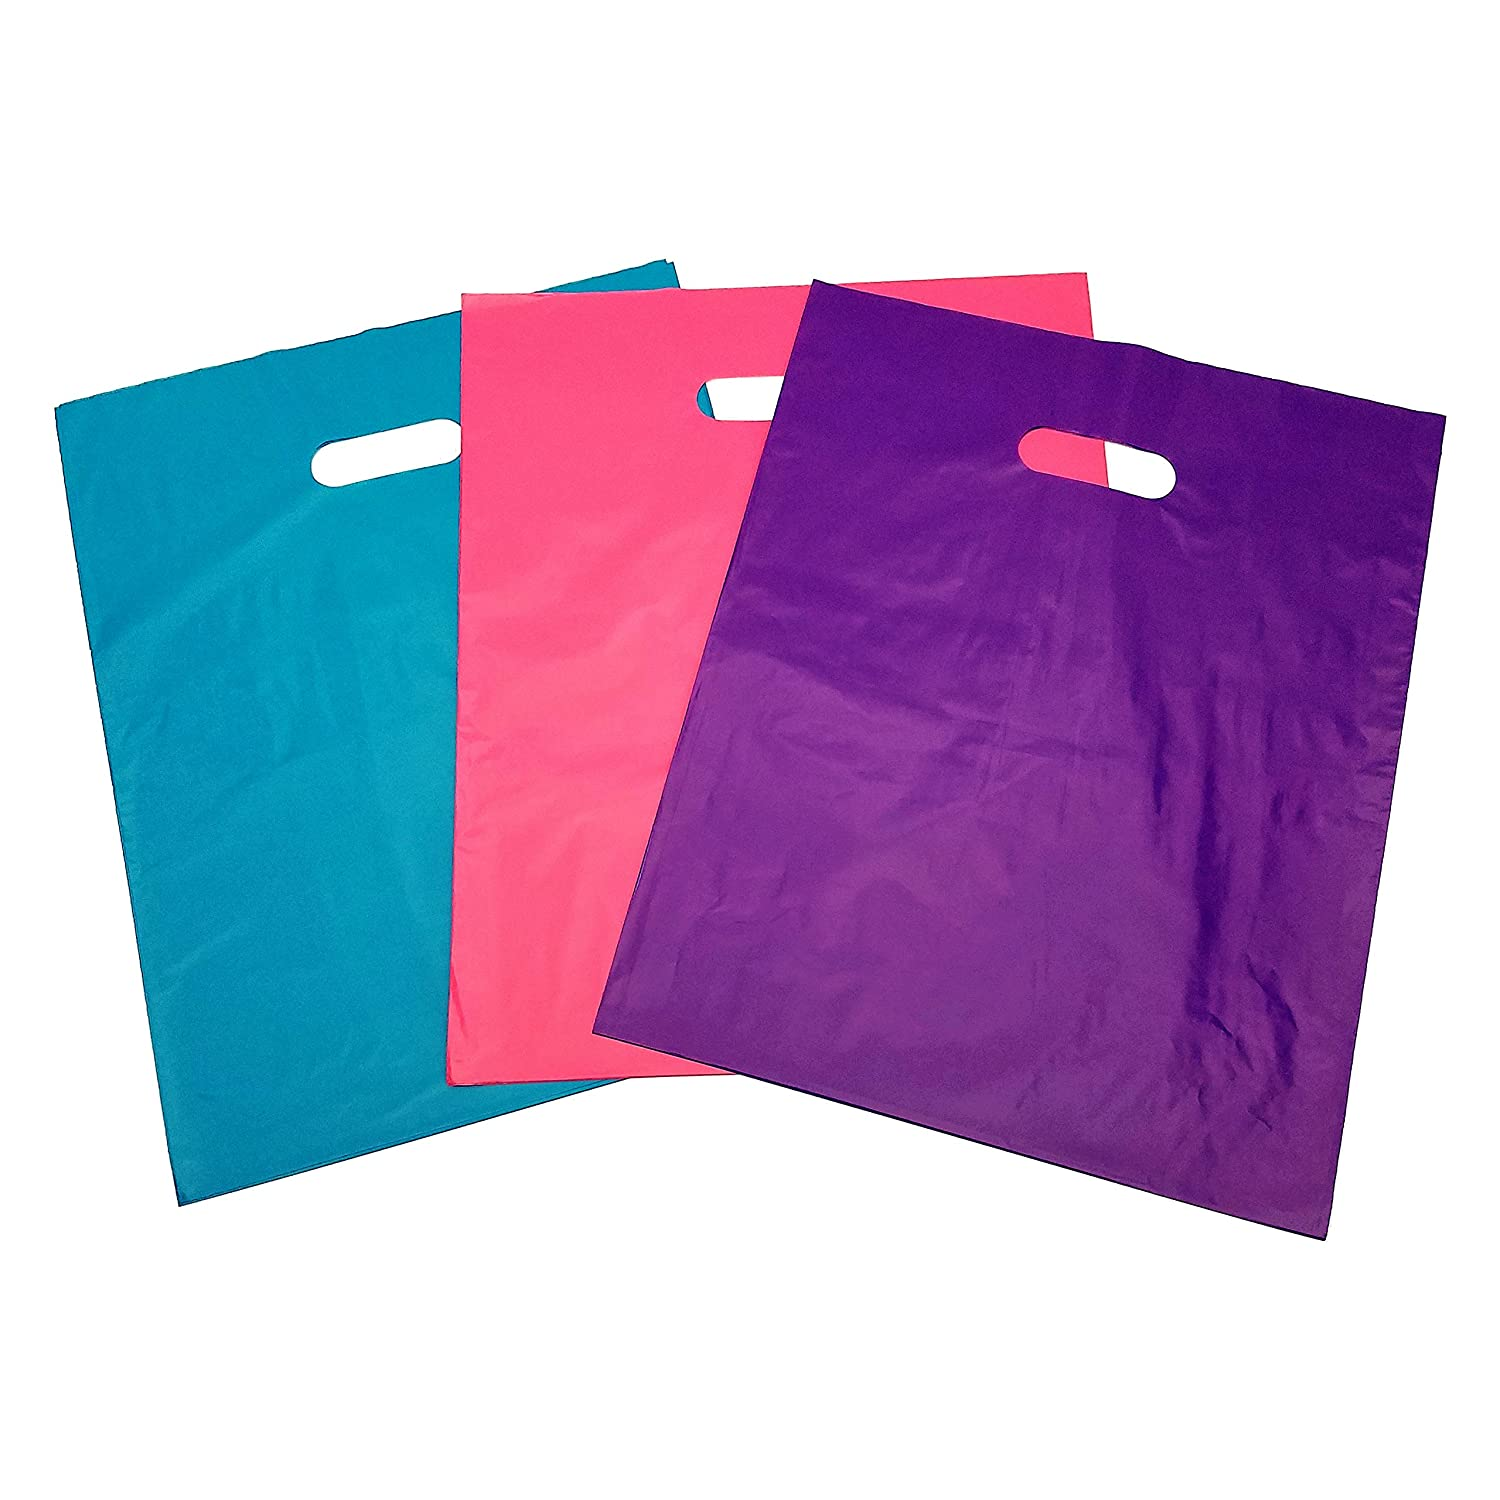 Shopping Bags, 120 ct, 12 X 15, Merchandise Bags with Handles, Boutiques, Stores, Clothing Consultants (40-Pink, 40-Purple, 40-Teal Bags Per Pack)